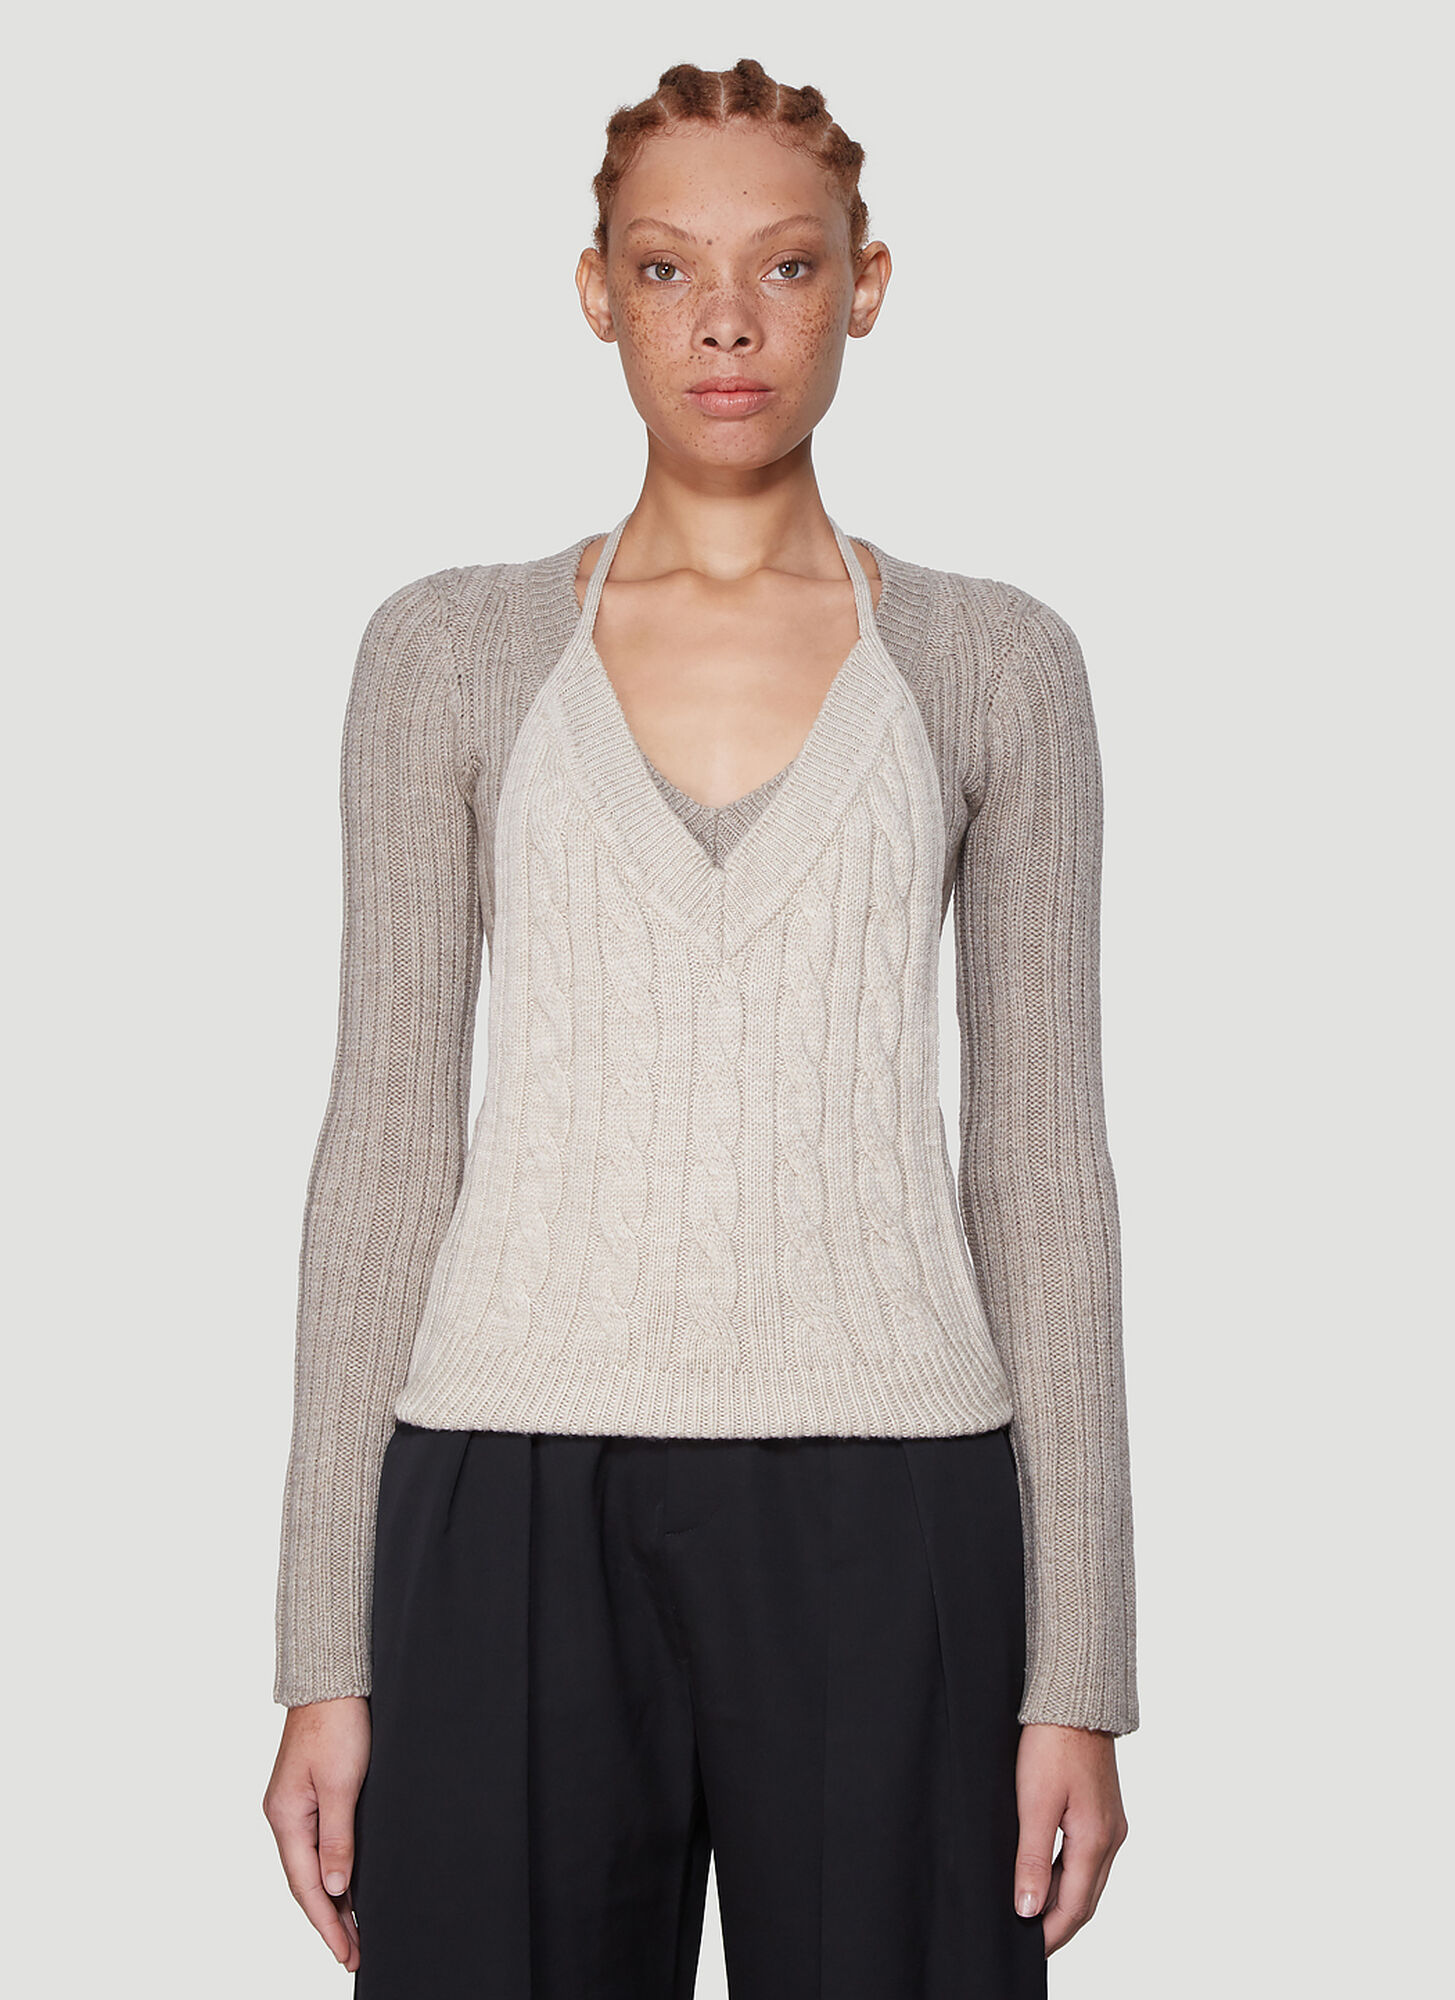 Jacquemus La Double Maille Knit Sweater in Grey